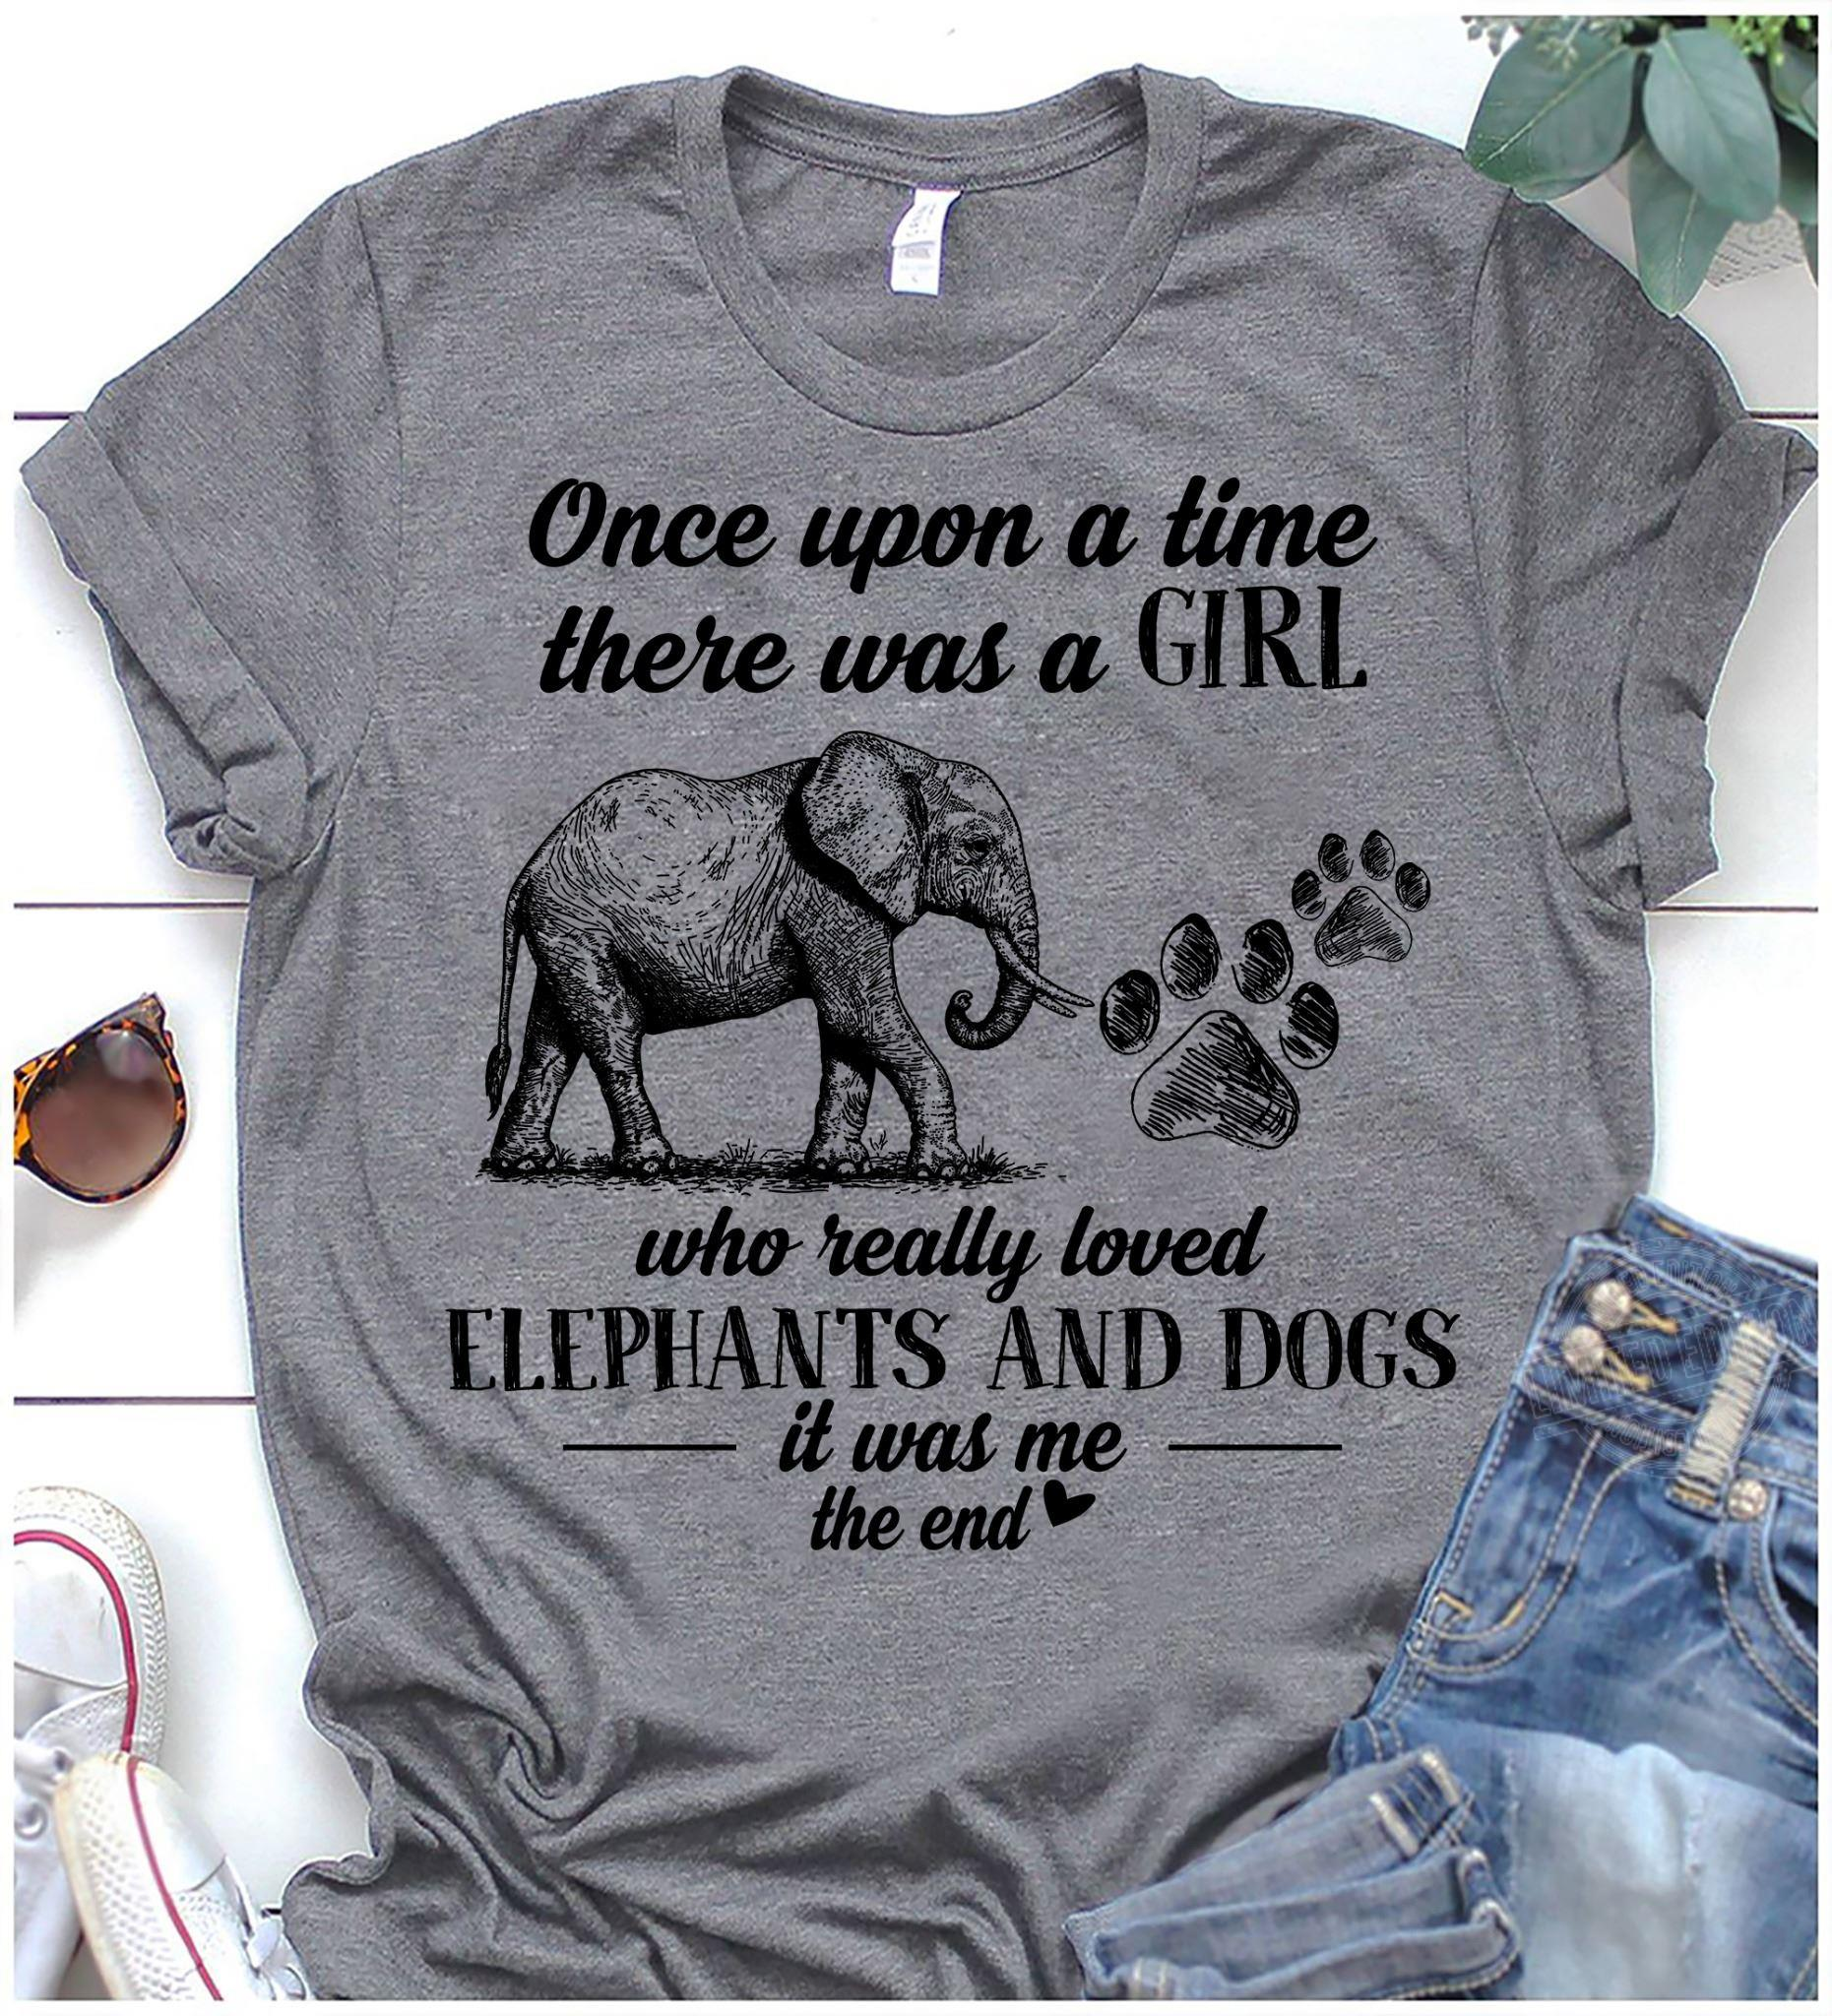 One upon a time there was a girl who really loved elephants and dogs it was me Shirt